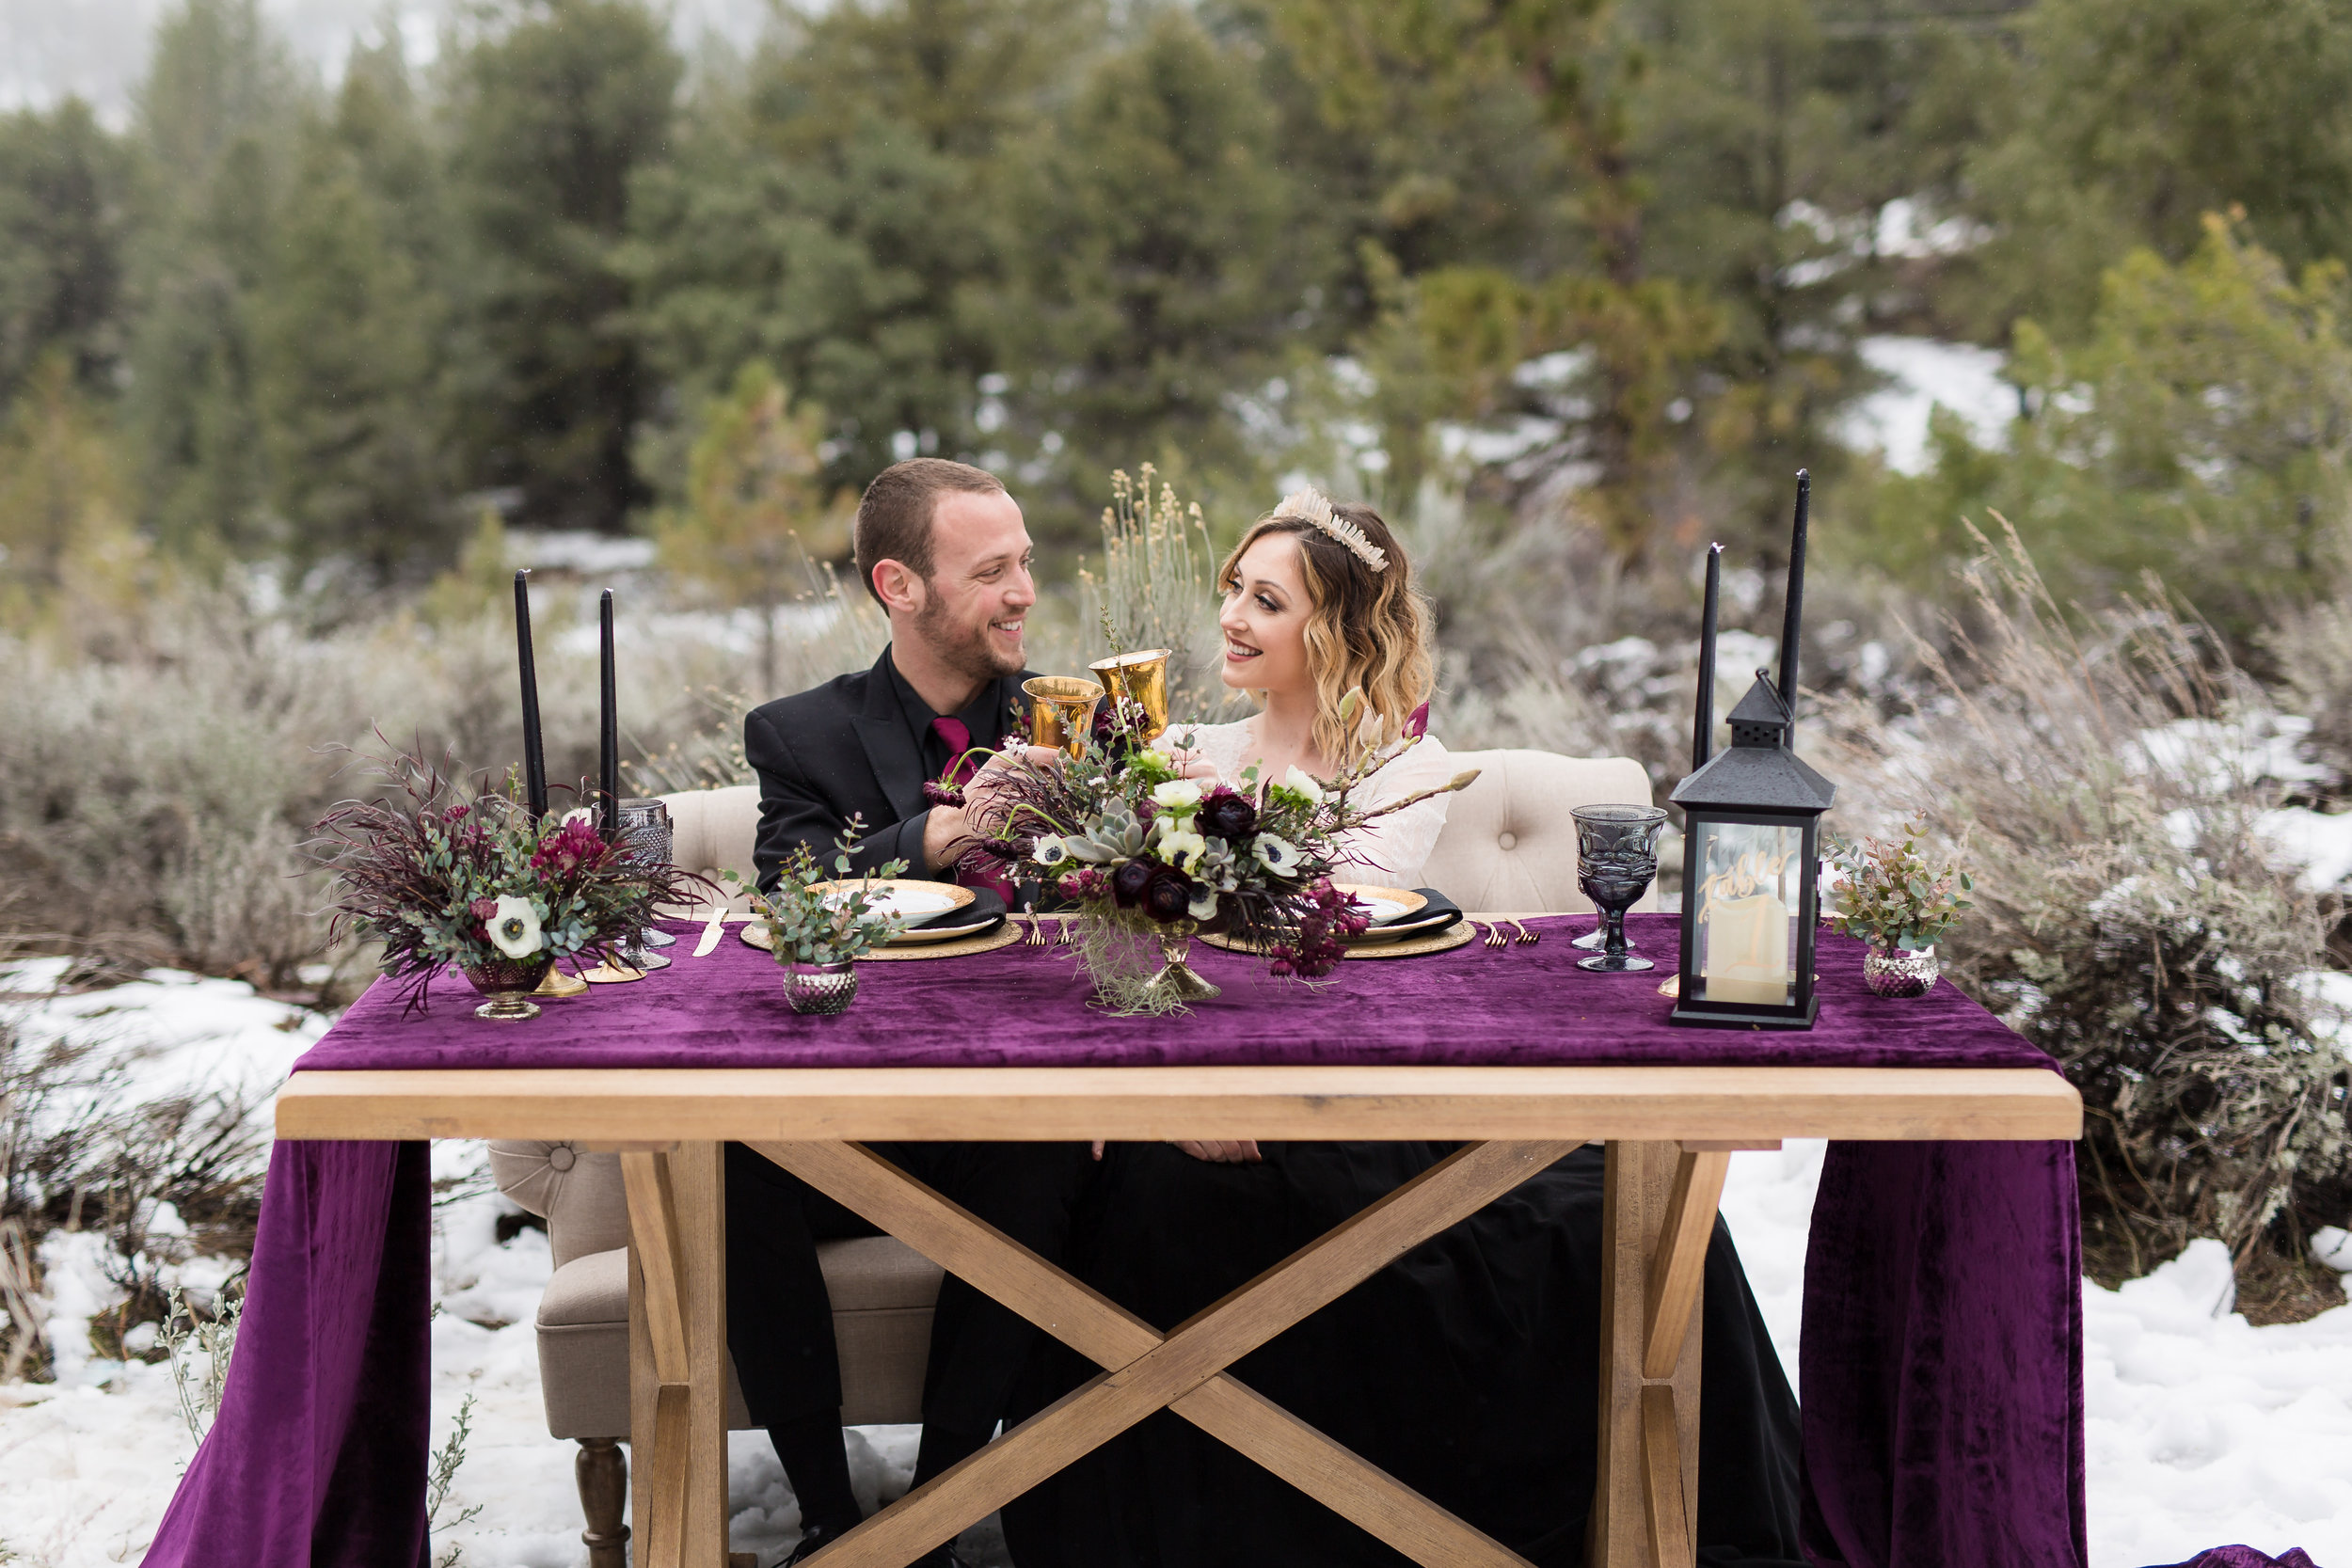 """For this moody winter styled shoot we choose colors that would pop against the white snow. Rich reds, purples, and black became the perfect palate. The beautiful bride transformed into an """"ice queen"""" with a quartz crown. The flowers fit the stunning moody and bold vibe of this wedding styled shoot in Frazier Park, CA. #JAE #janealexandraevents #mountainweddingvenue #winterweddingplanning #californiawinterwedding"""